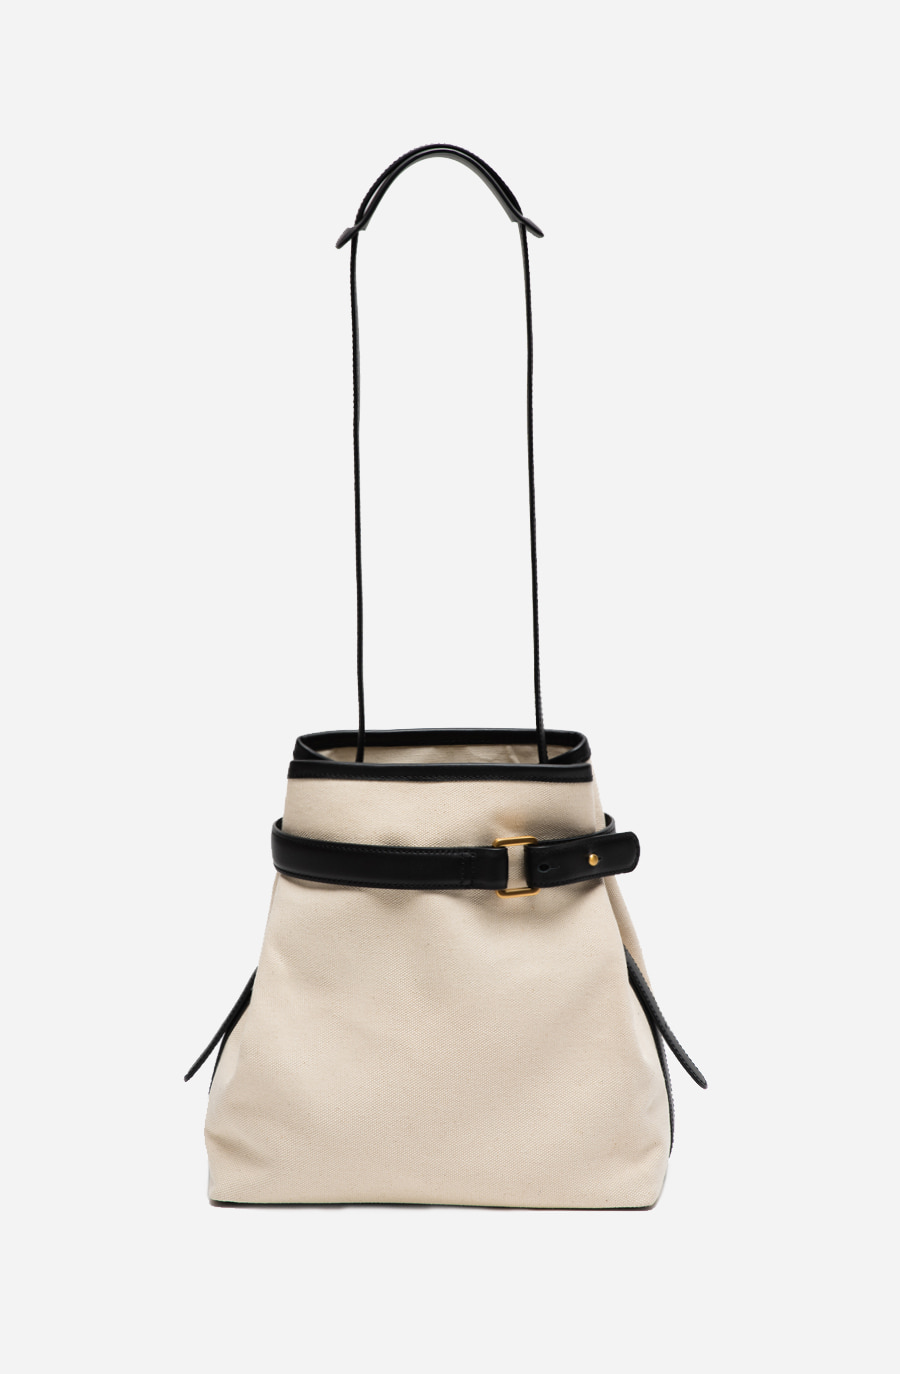 LIGNE BAG (black)